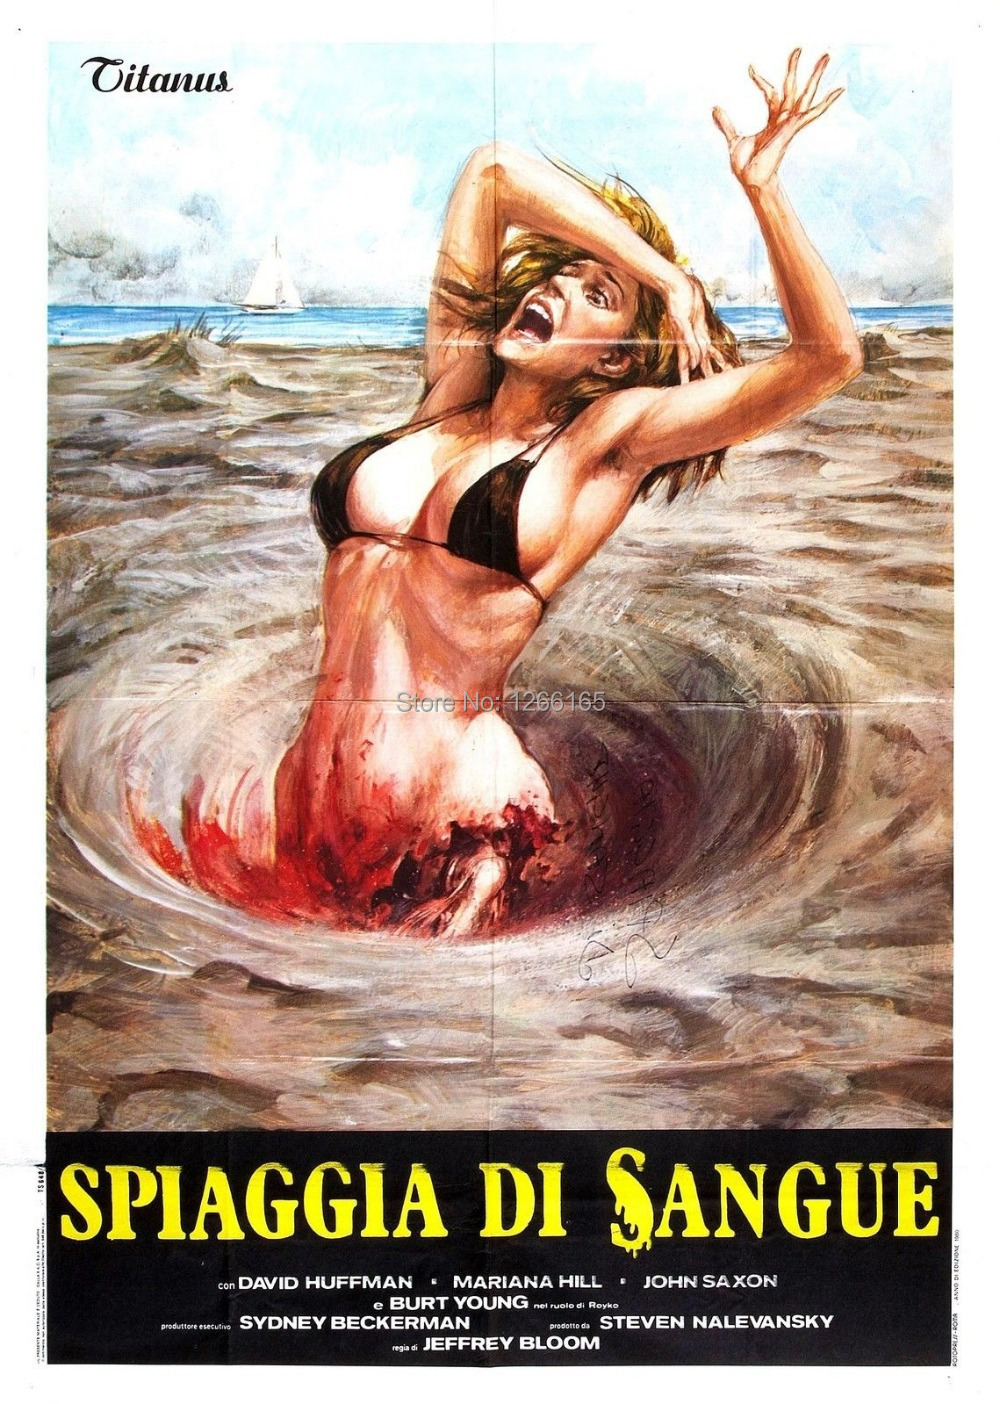 BLOOD BEACH Movie Poster 1980 Horror Sci-Fi Print Silk poster Home Decoration 12x18 24x36 inch